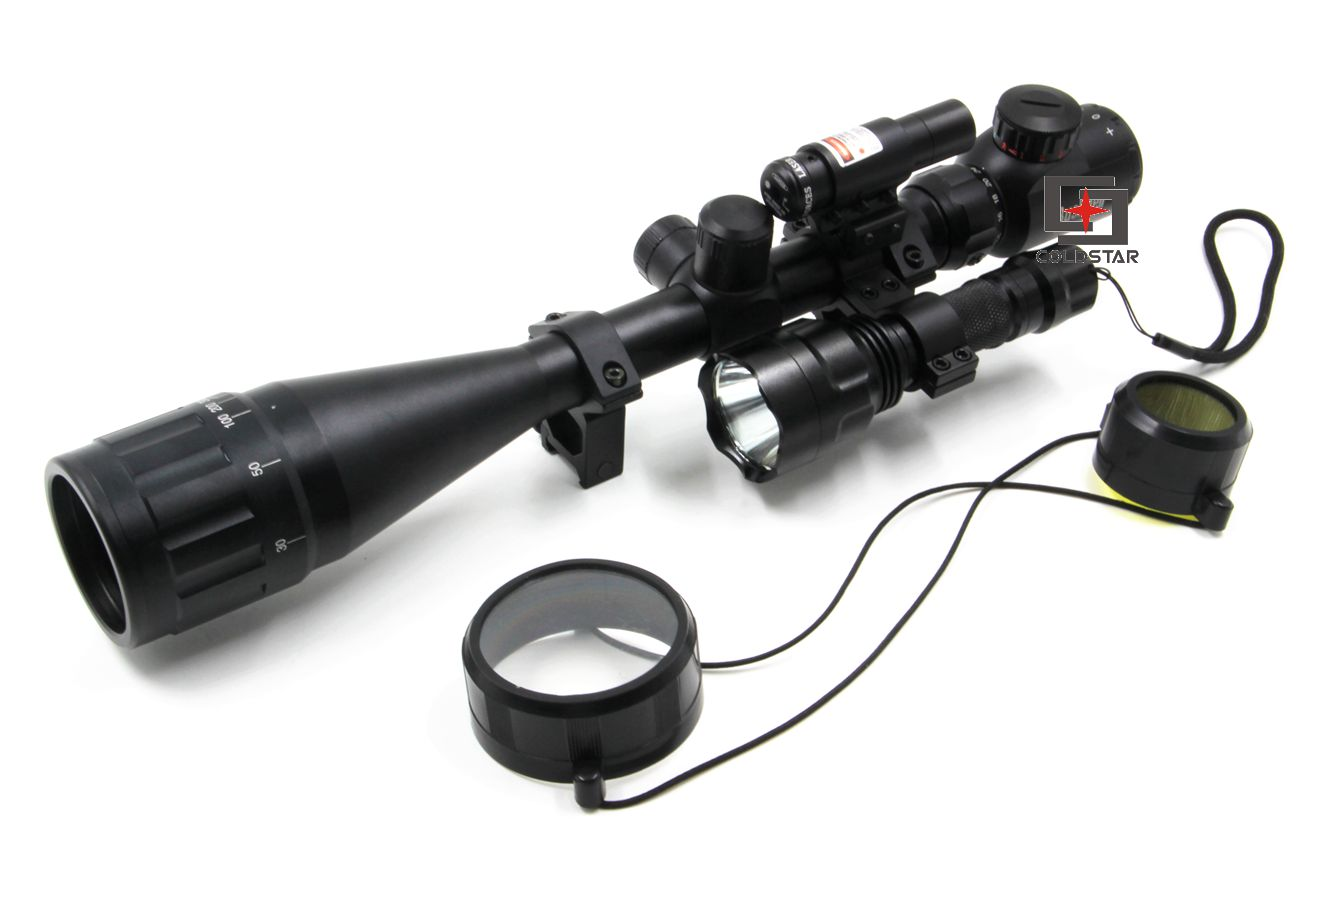 Hunting Compact Combo Air 6-24x50AOE Hunting Rifle Scope w/ Laser & CREE T6 LED Hunting Flashlight 5Mode C8 Torch Flash Light